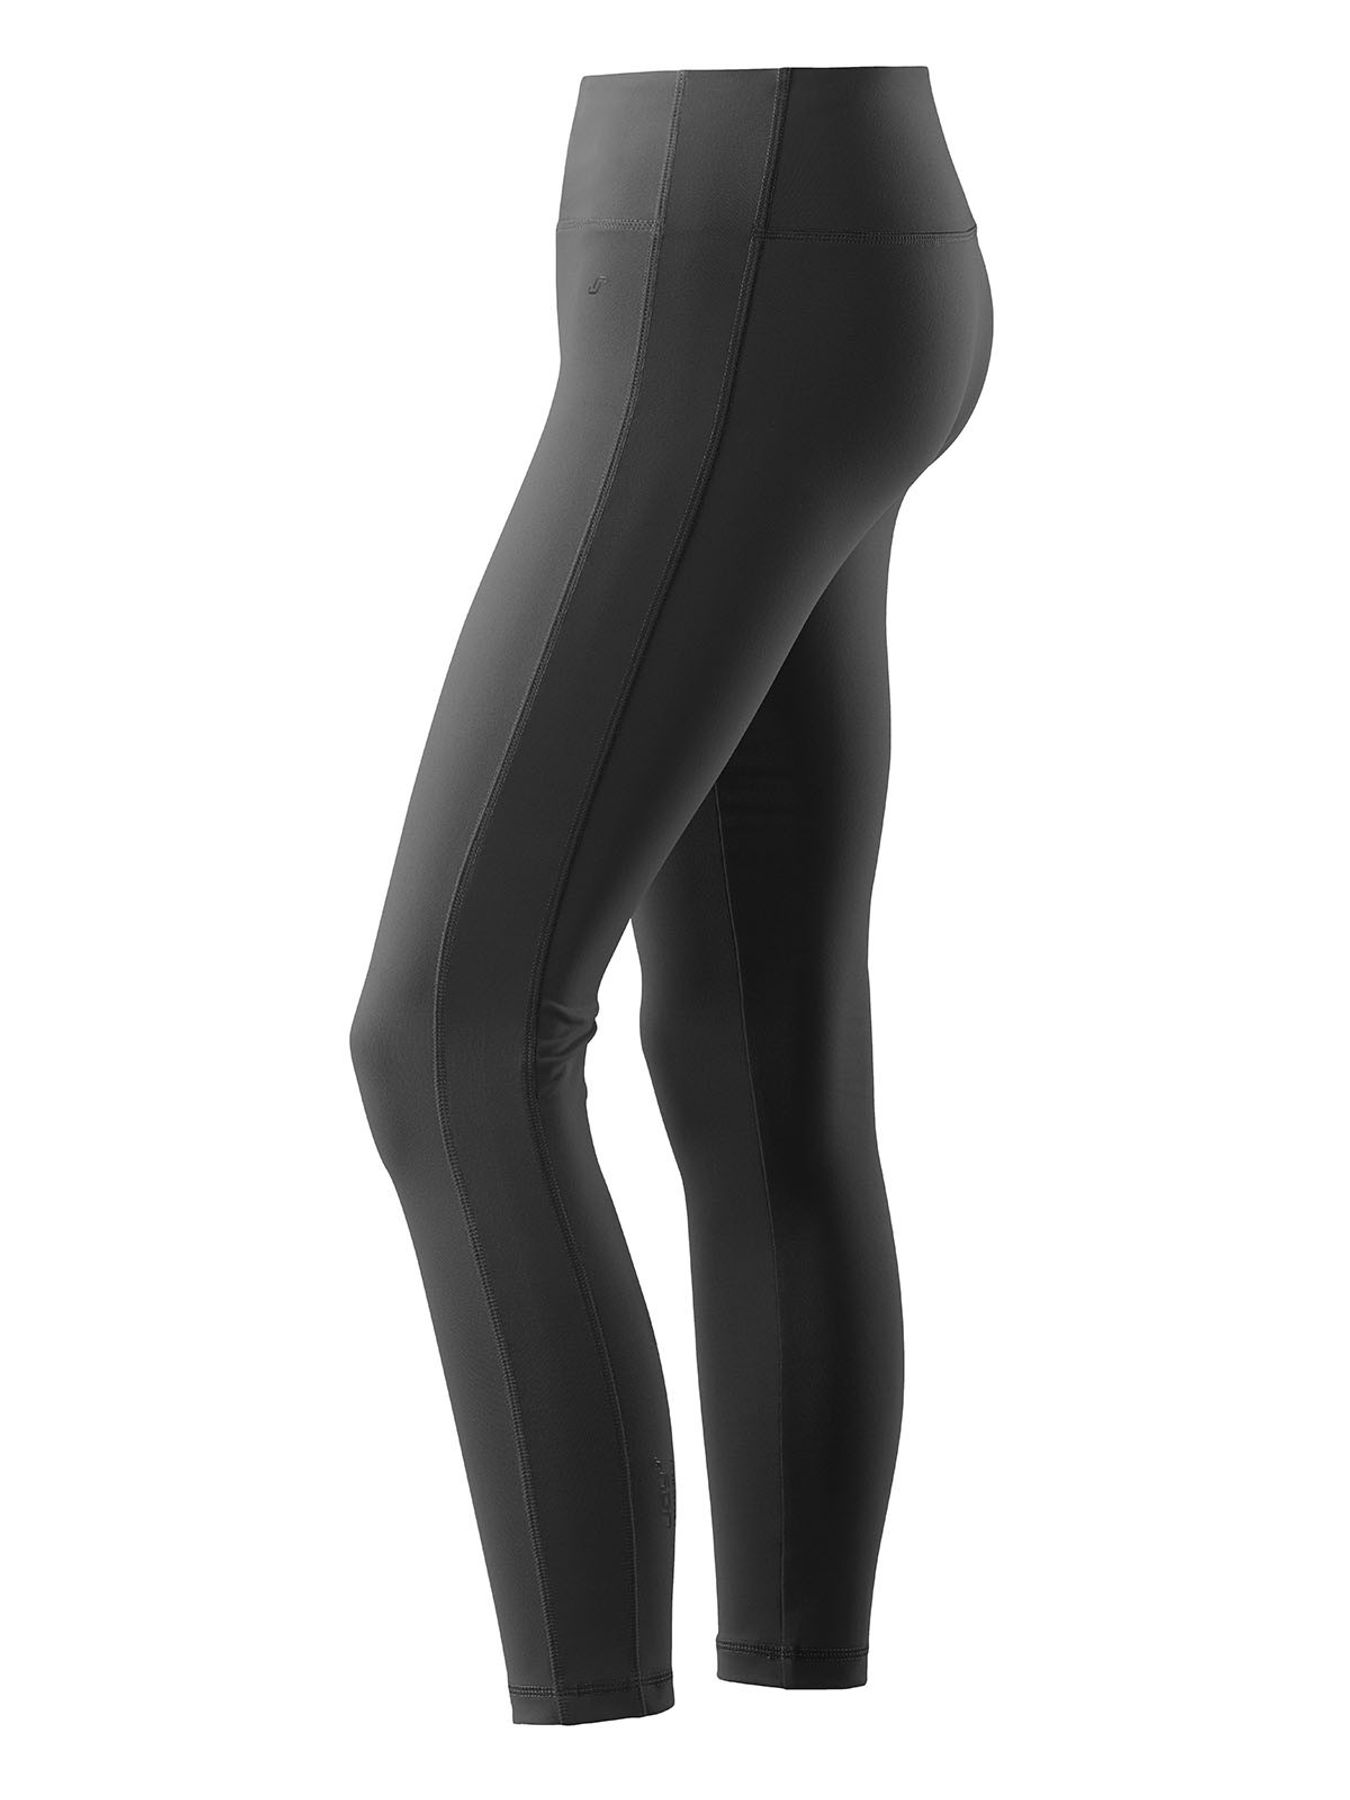 Joy - Bodyfit - Damen Sport Hose mit Shaping-Effekt, Michella (30141) – Bild 2